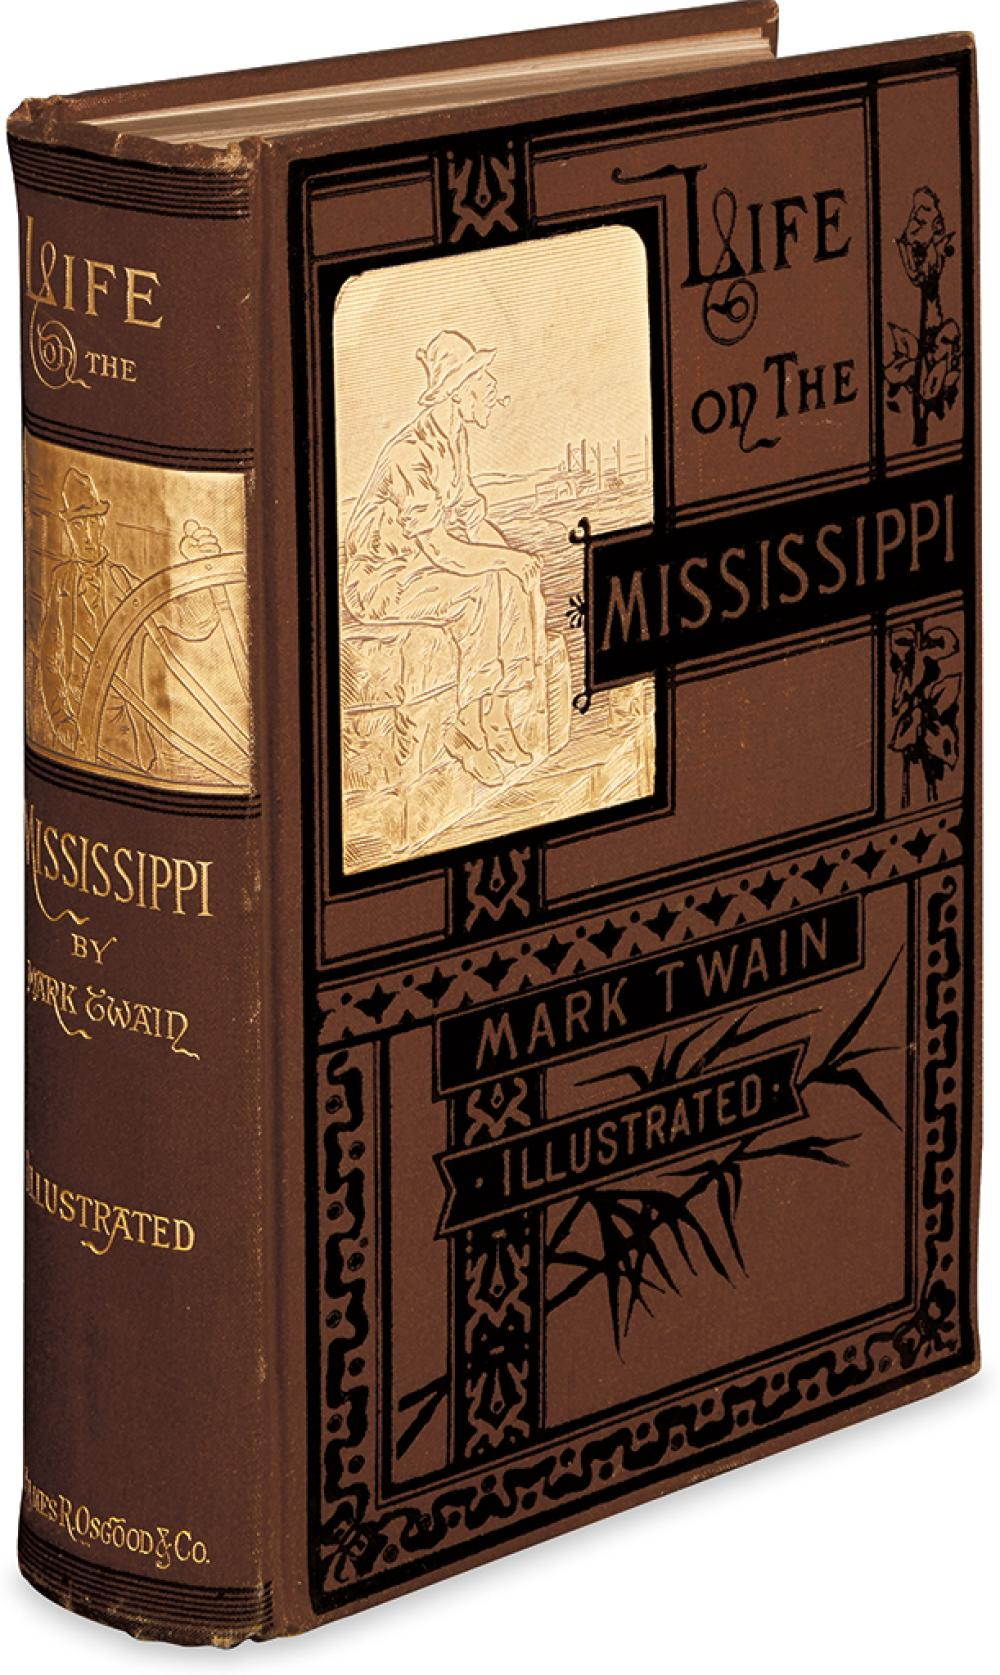 TWAIN, MARK. Life on the Mississippi.